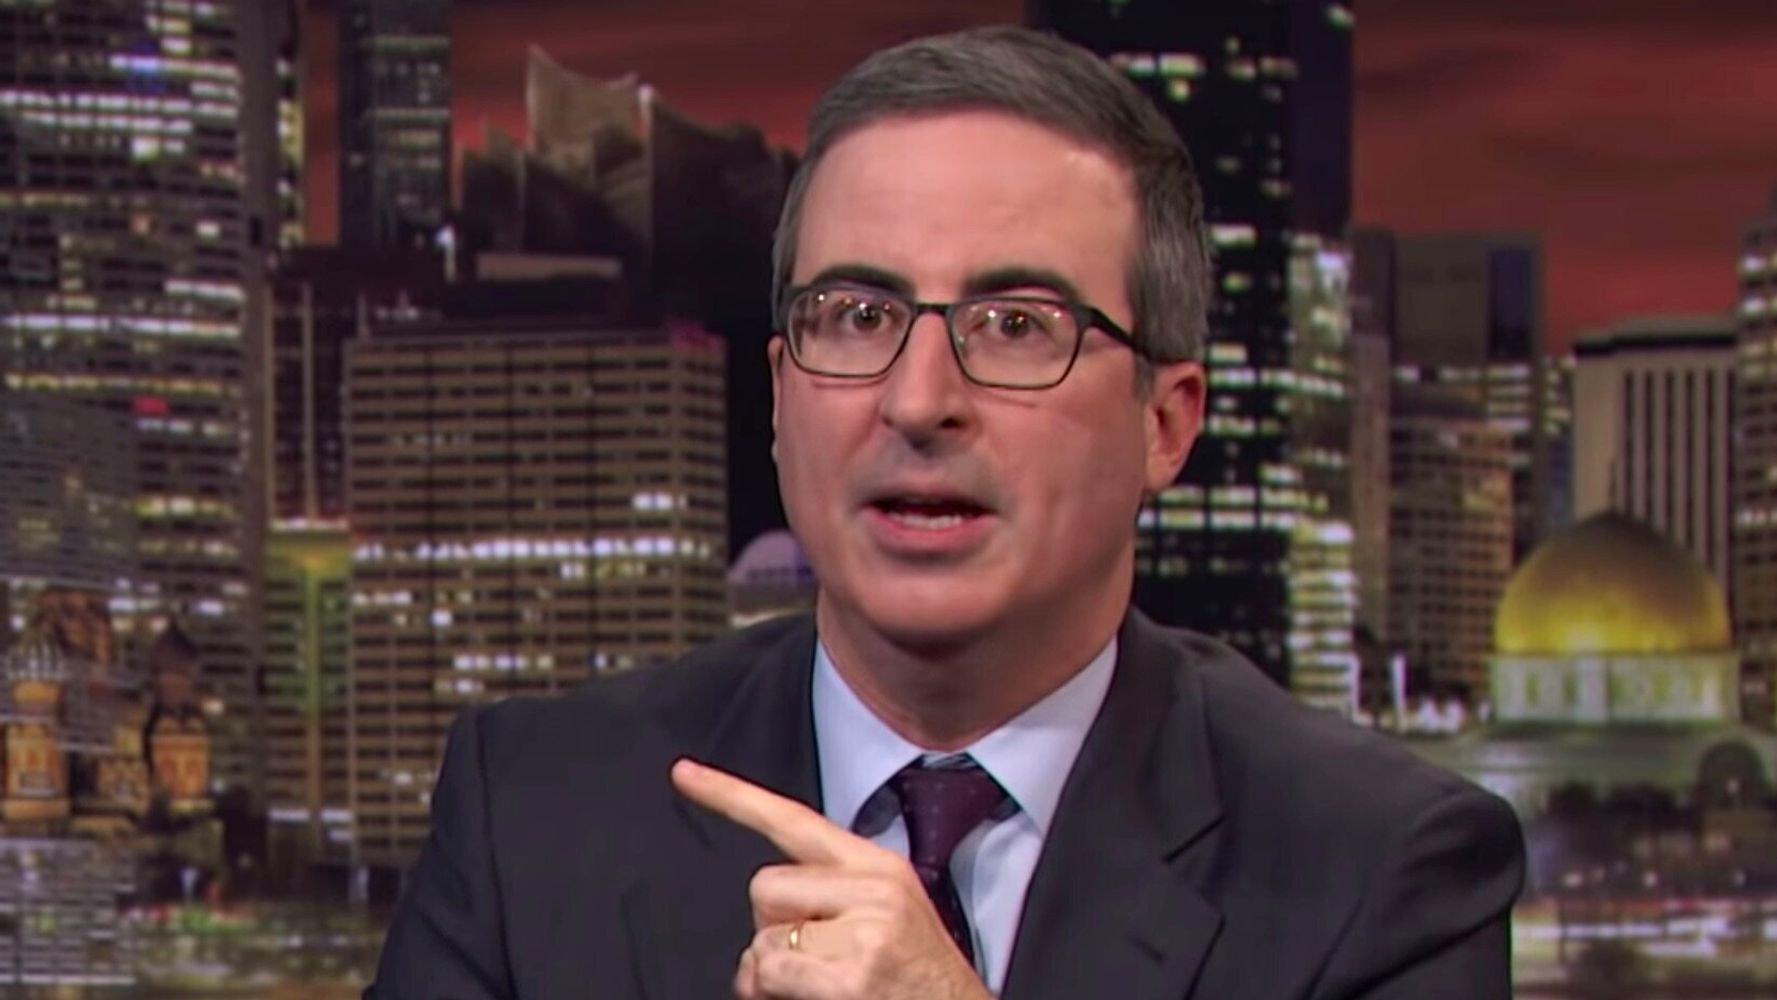 Want To 'Really Irritate' Donald Trump? John Oliver Has A Plan For You.